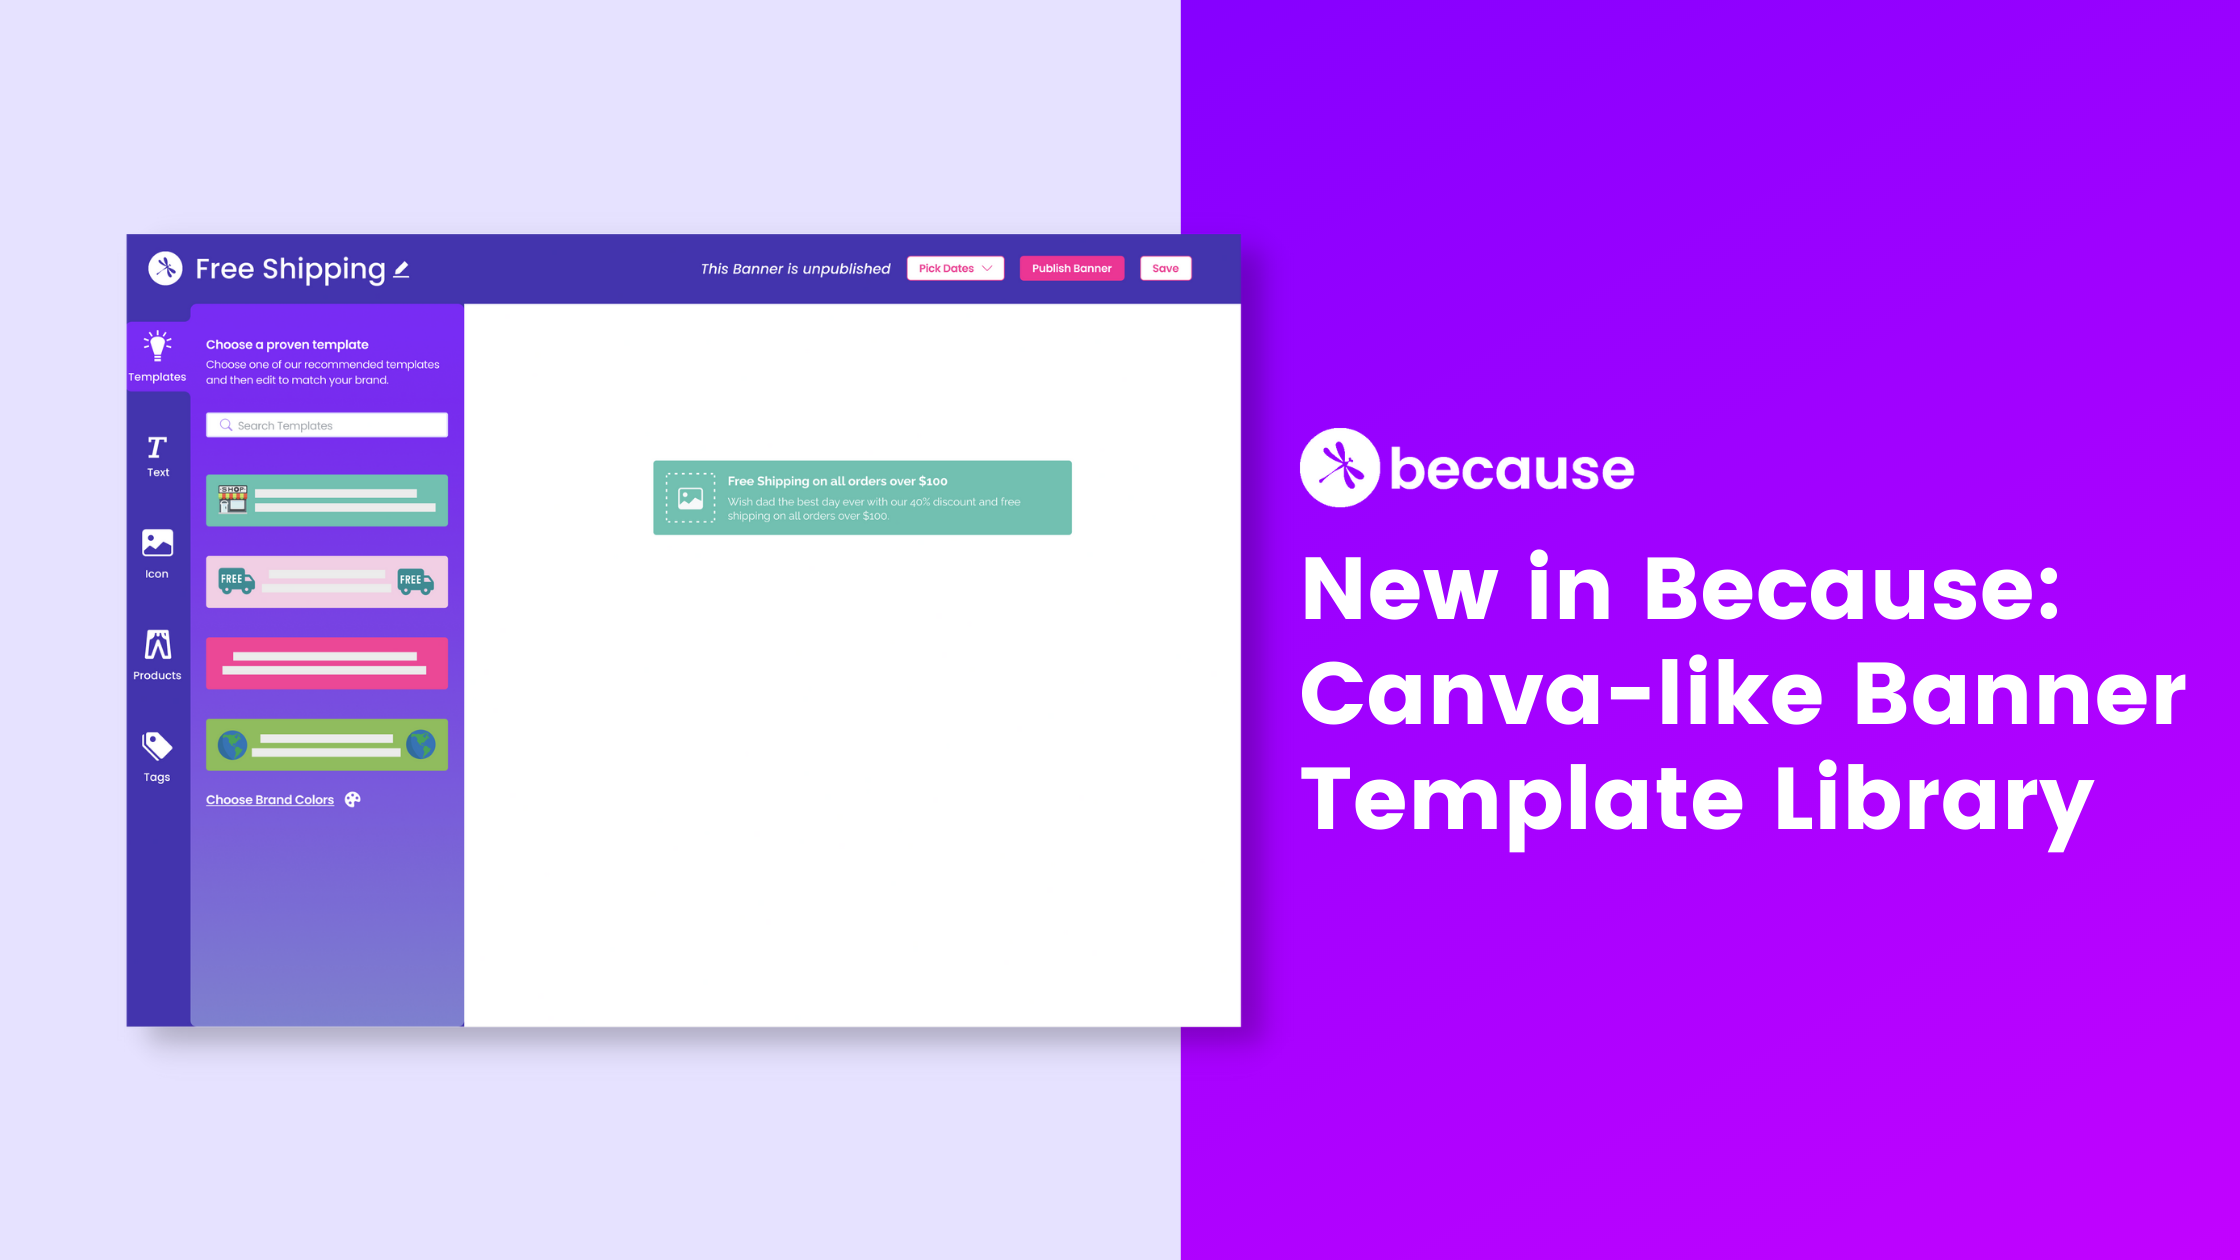 New in Because: Canva-like Banner Template Library